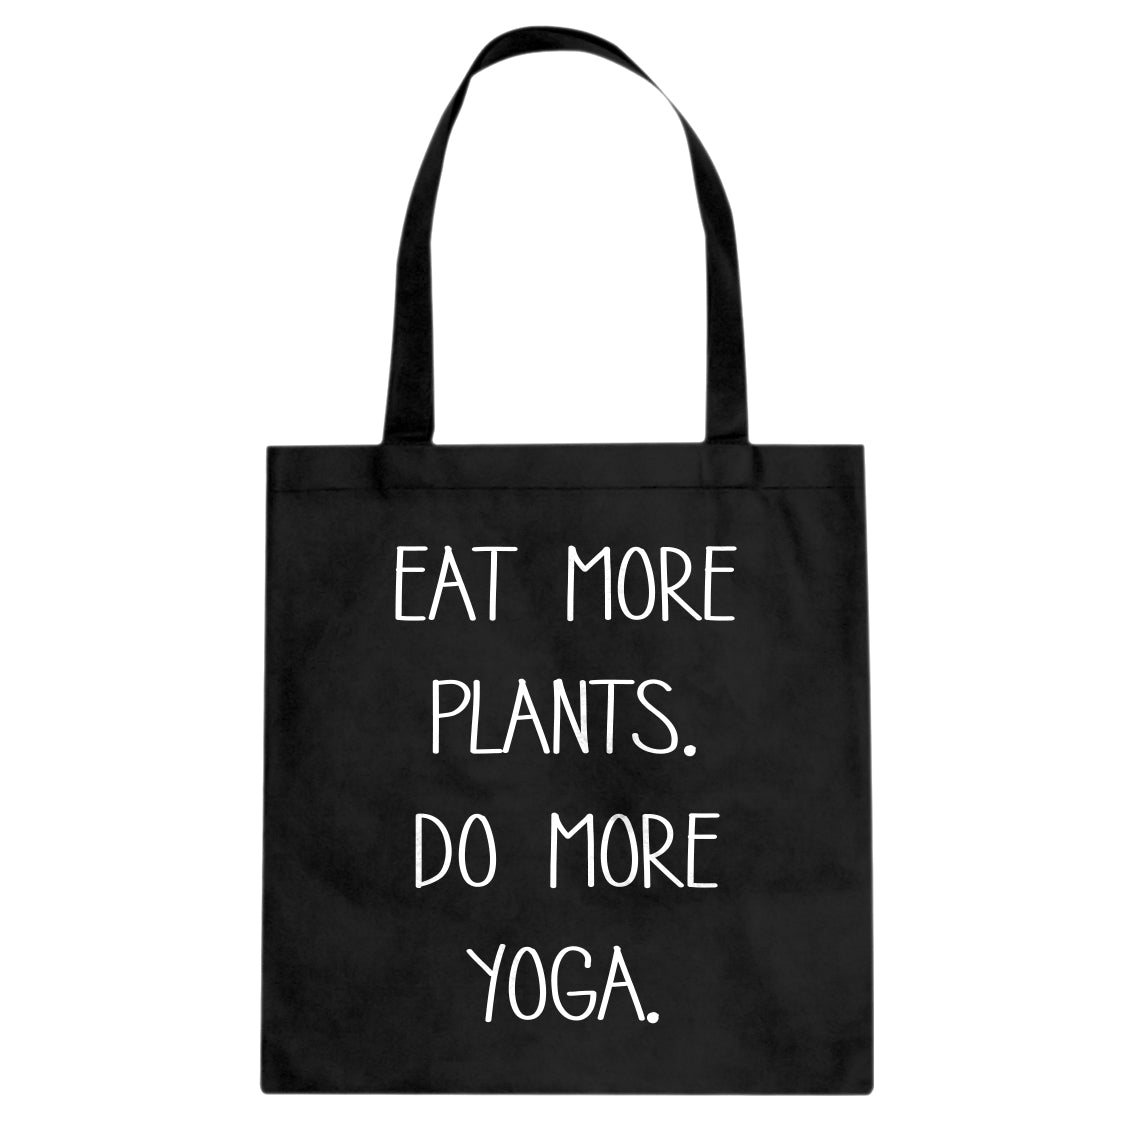 Tote More Plants More Yoga Canvas Tote Bag